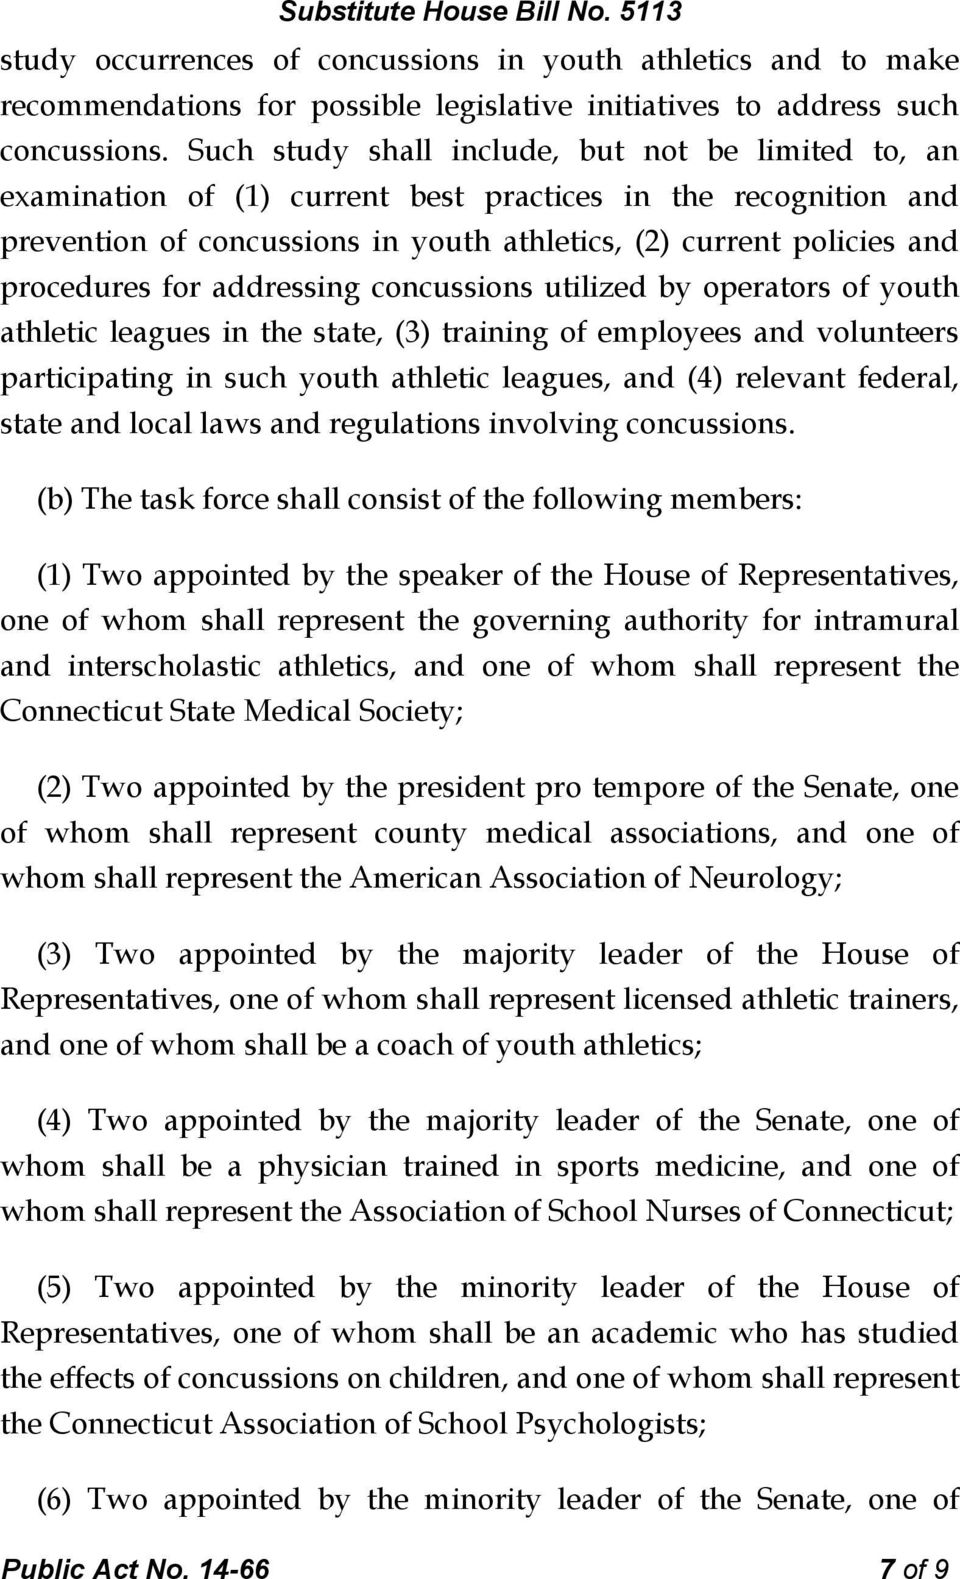 for addressing concussions utilized by operators of youth athletic leagues in the state, (3) training of employees and volunteers participating in such youth athletic leagues, and (4) relevant